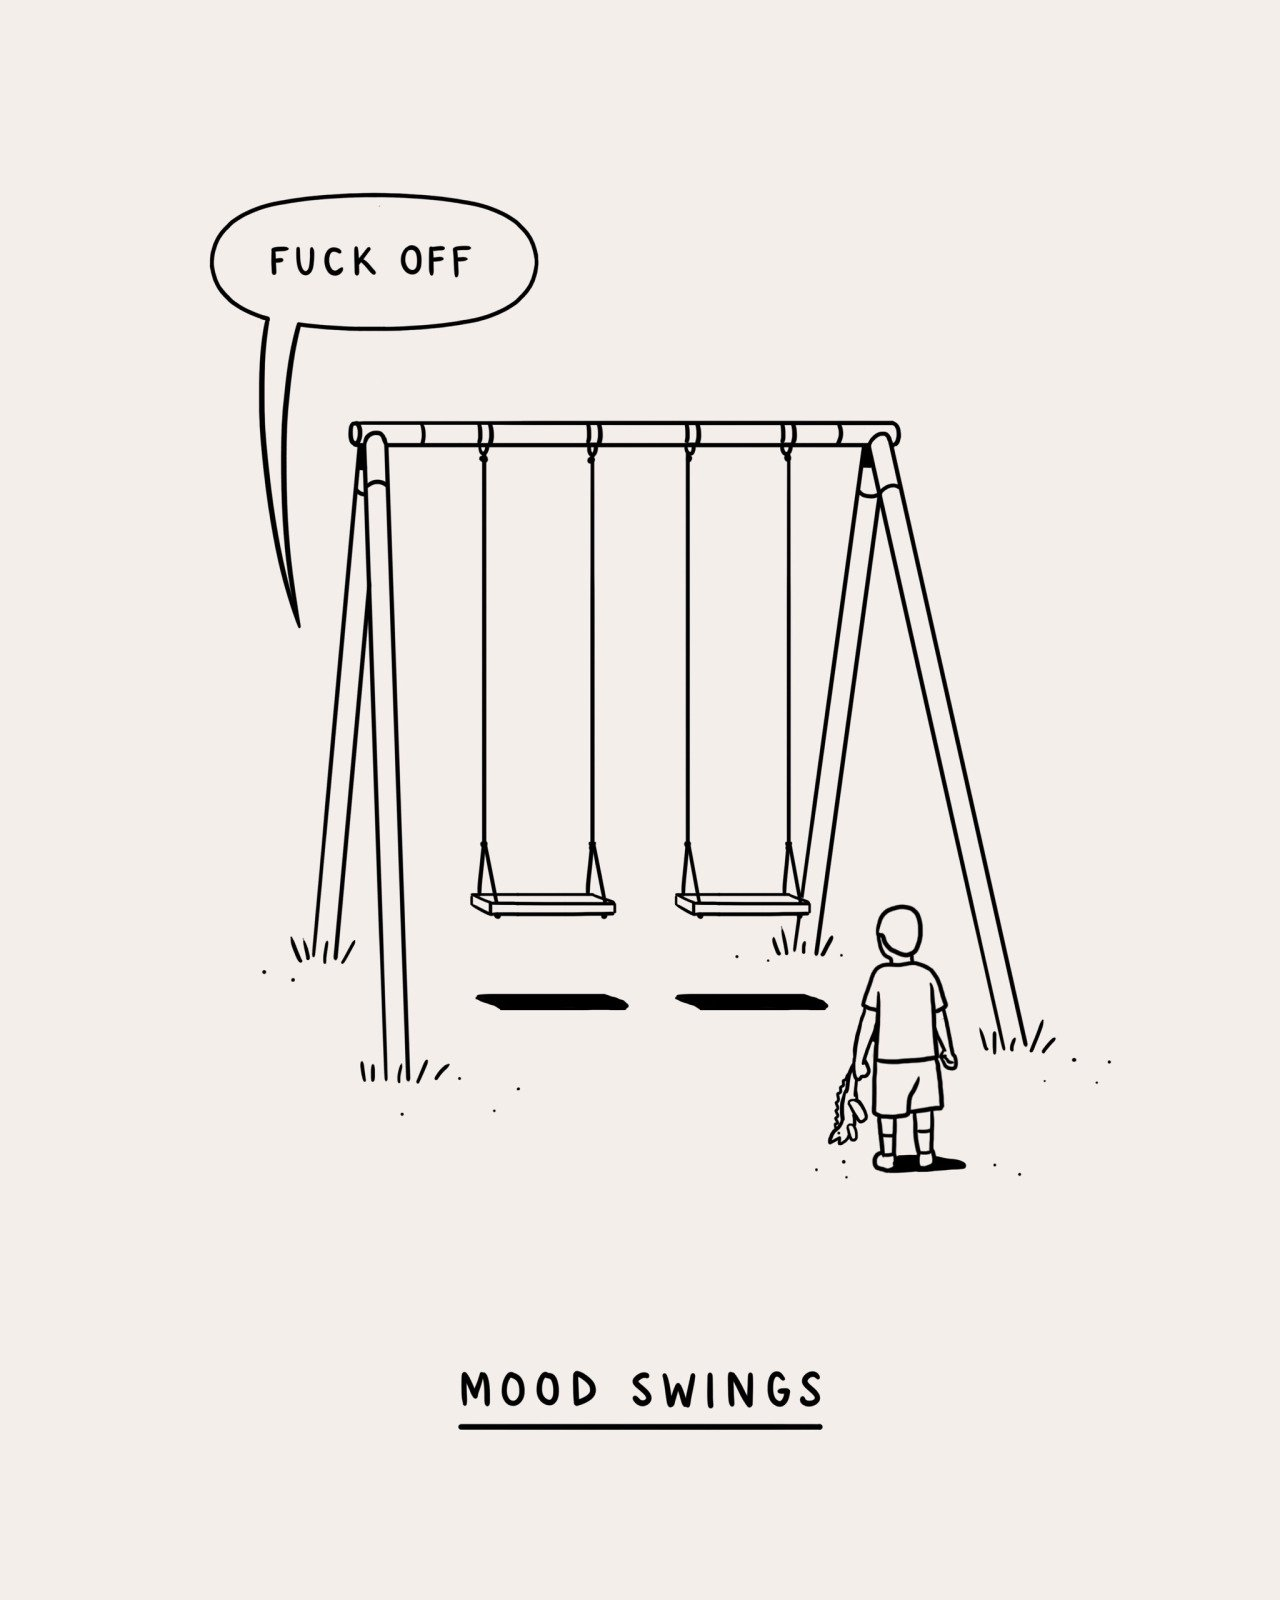 Le brillanti illustrazioni dell'artista Matt Blease | Collater.al 8